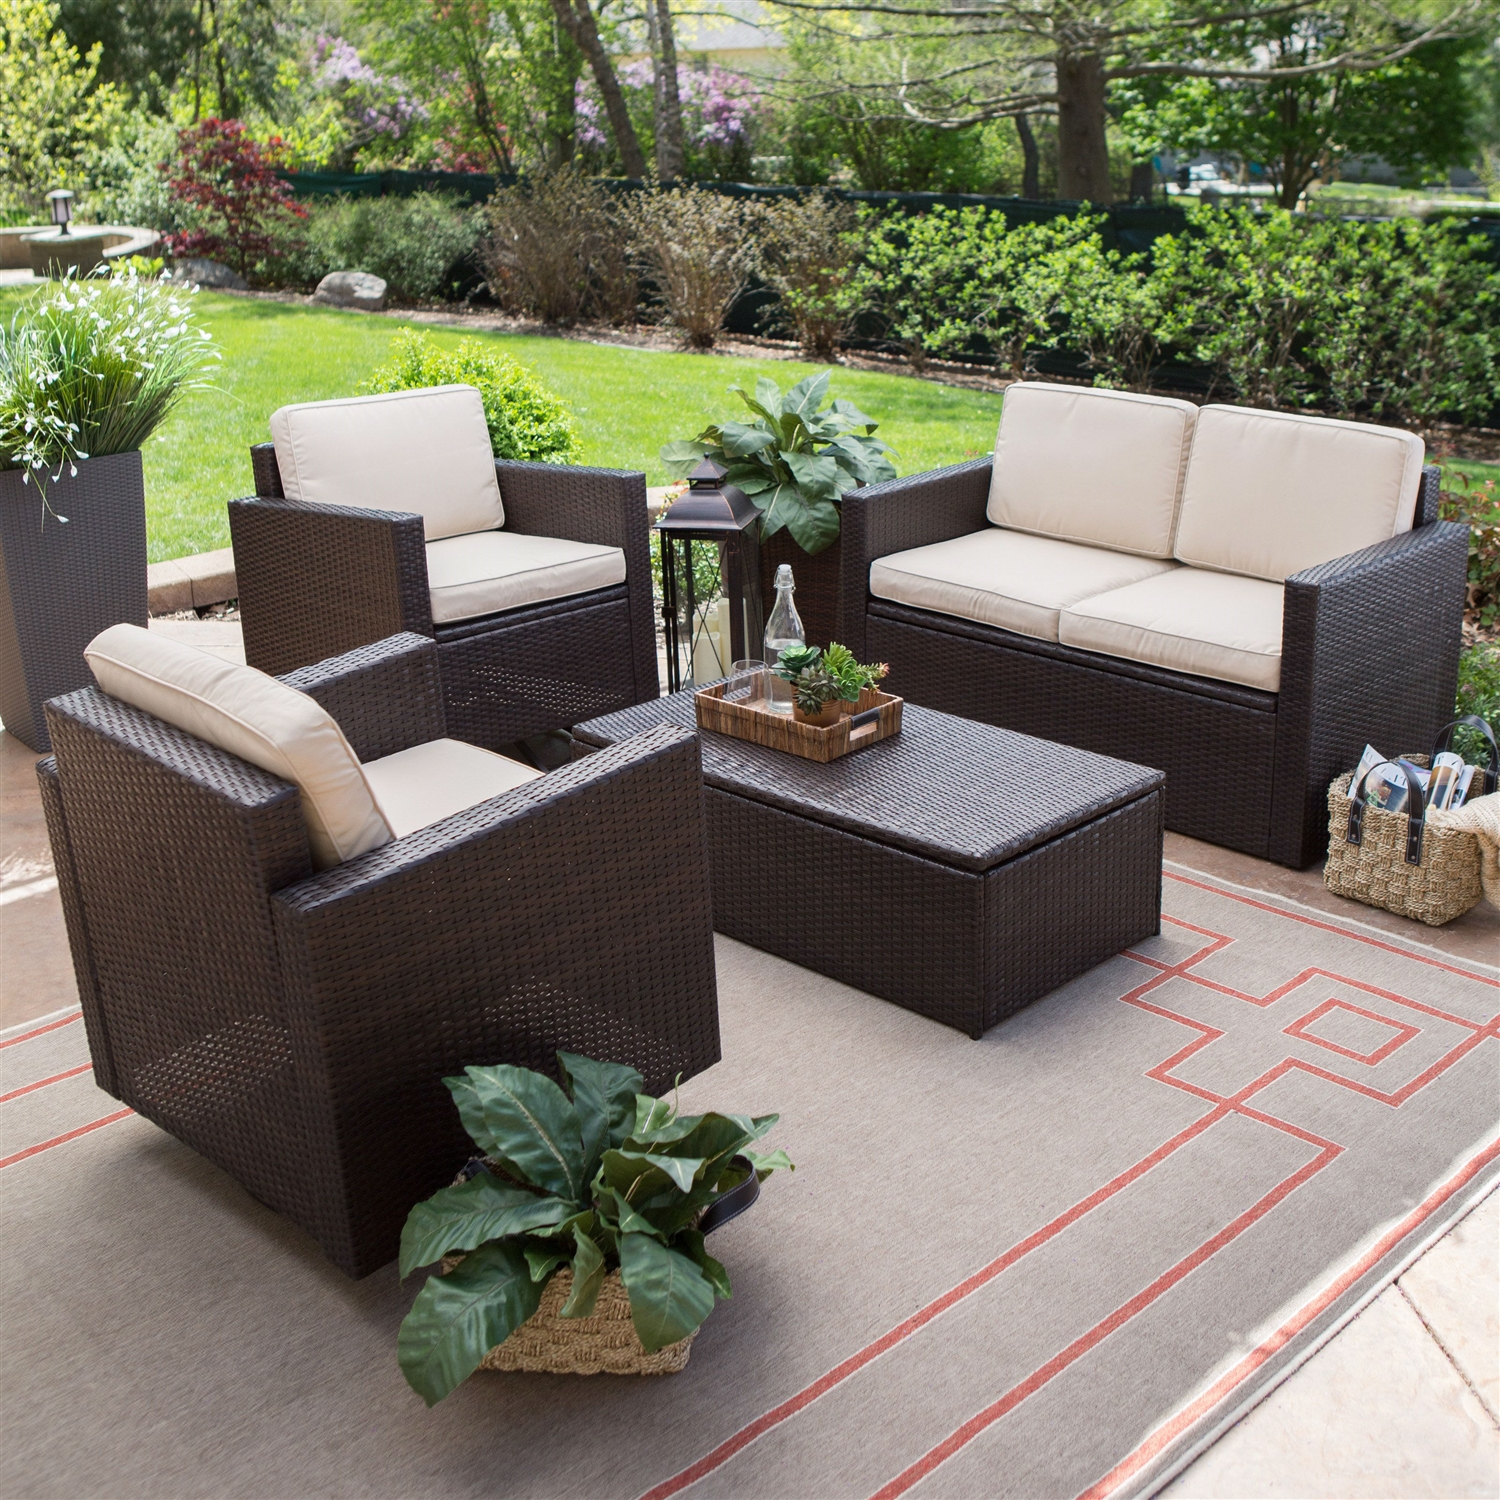 Outdoor Wicker Resin 4-Piece Patio Furniture Dinning Set with 2 Chairs  Loveseat and Coffee - Outdoor Wicker Resin 4-Piece Patio Furniture Dinning Set With 2